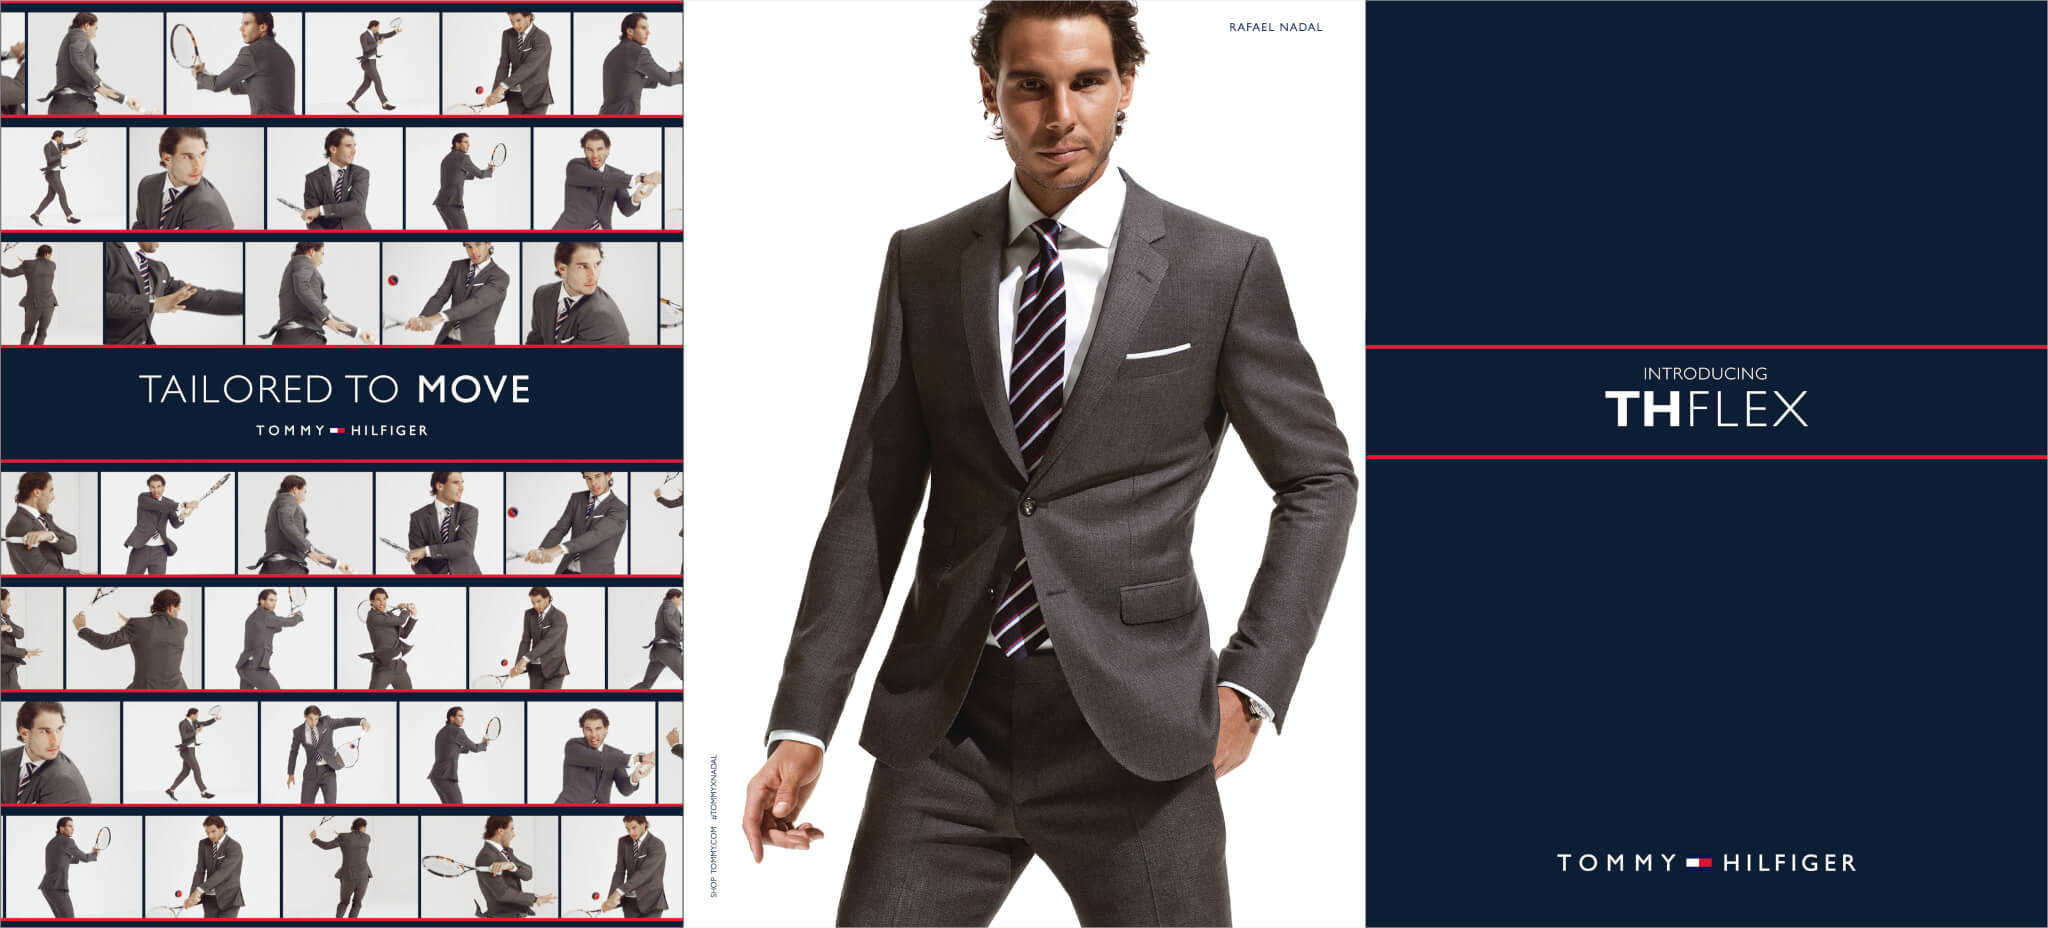 TH_SS16_TAILORED_NADAL_PRINT-US_3pg_GATEFOLD